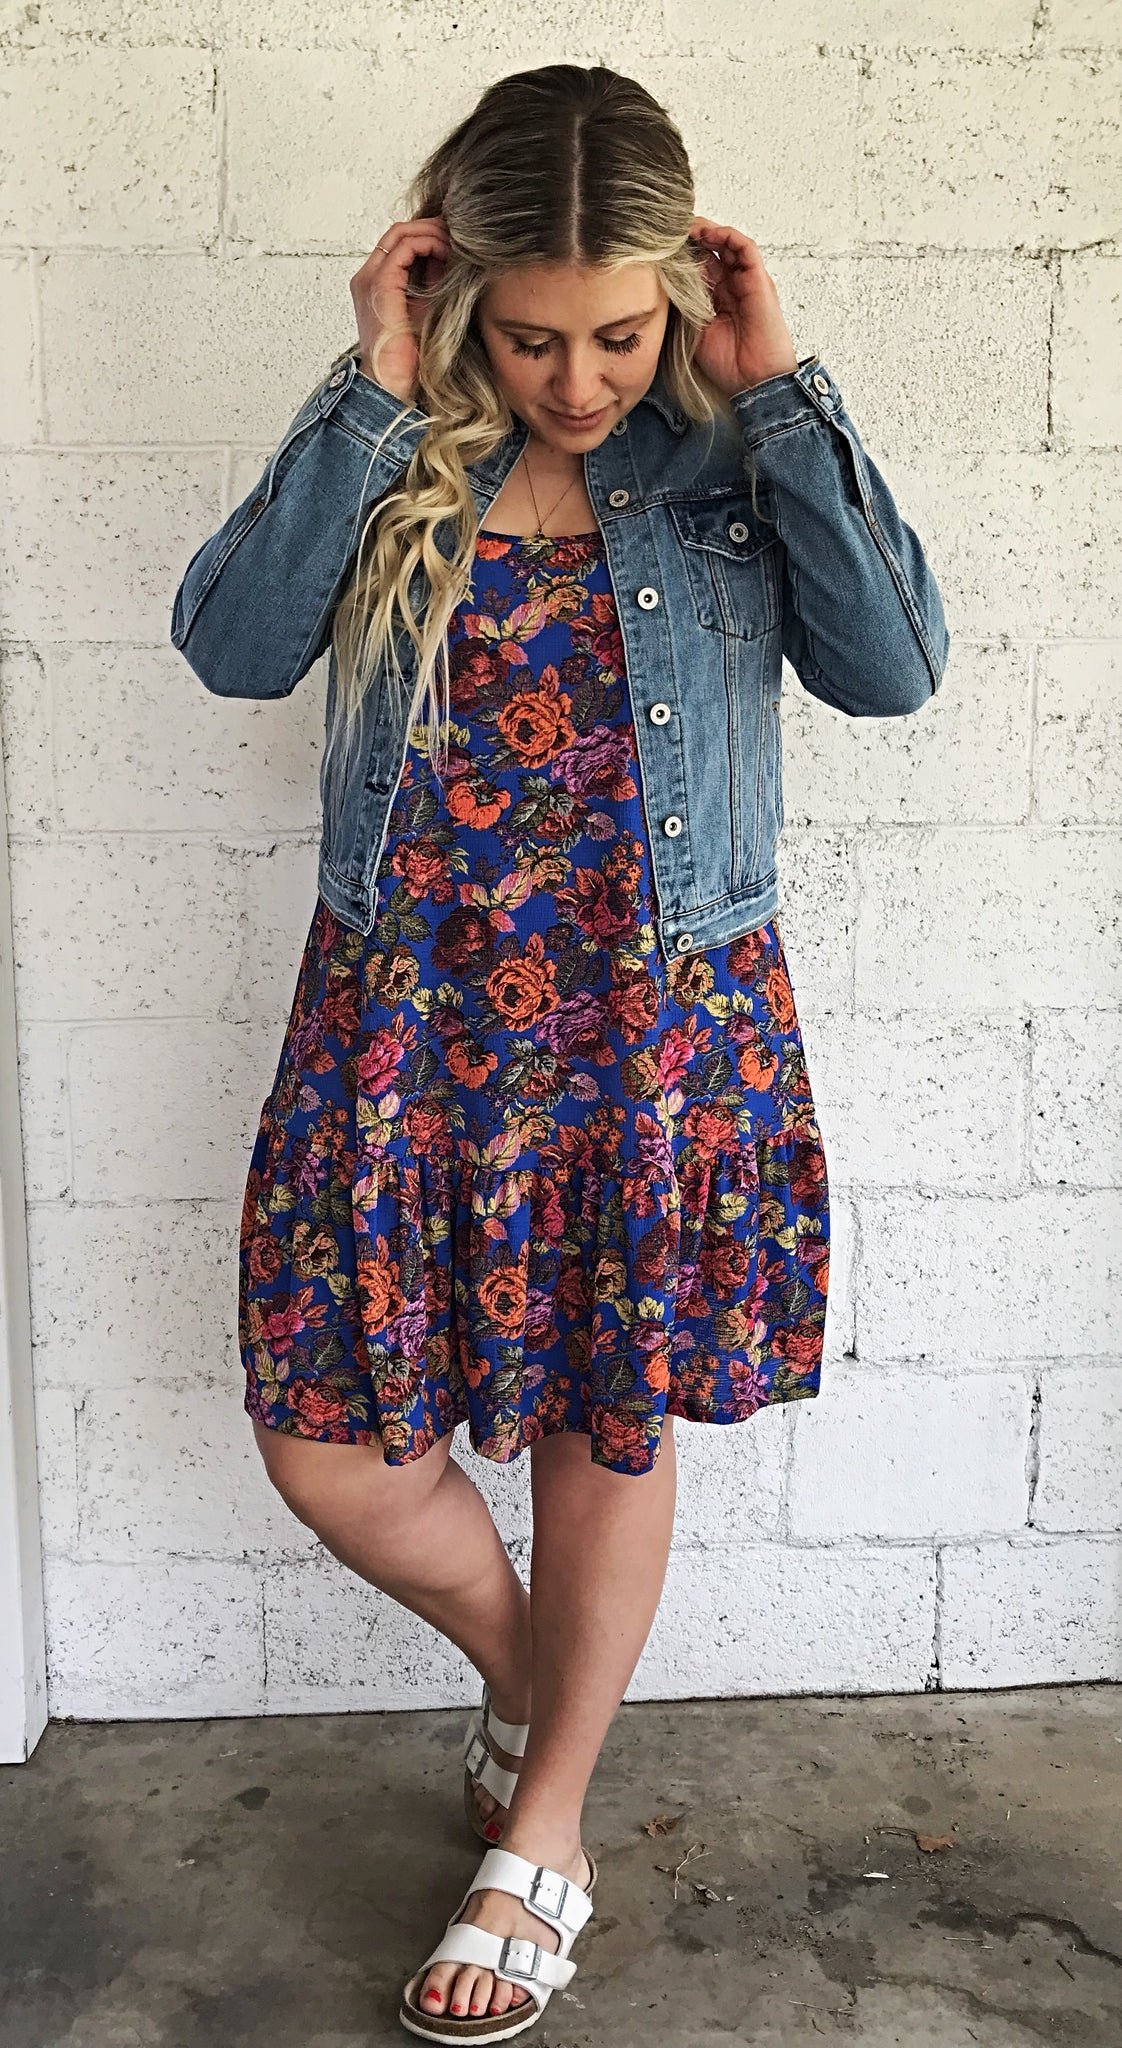 Phoebe Buffay Flower Dress